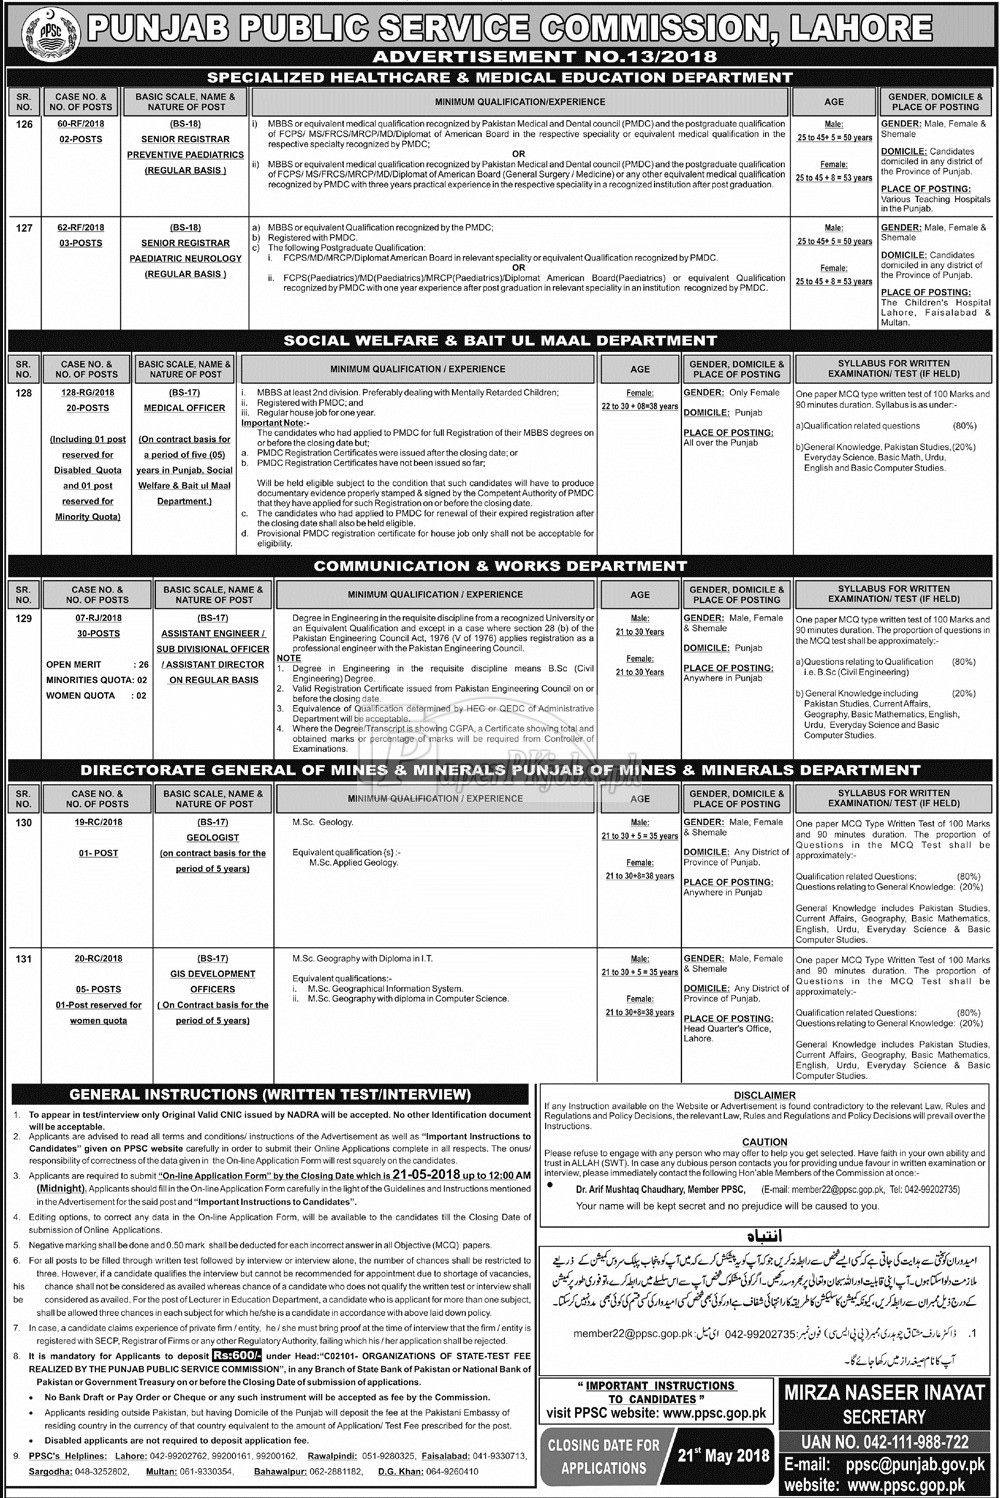 PPSC Jobs 6 May 2018(1)